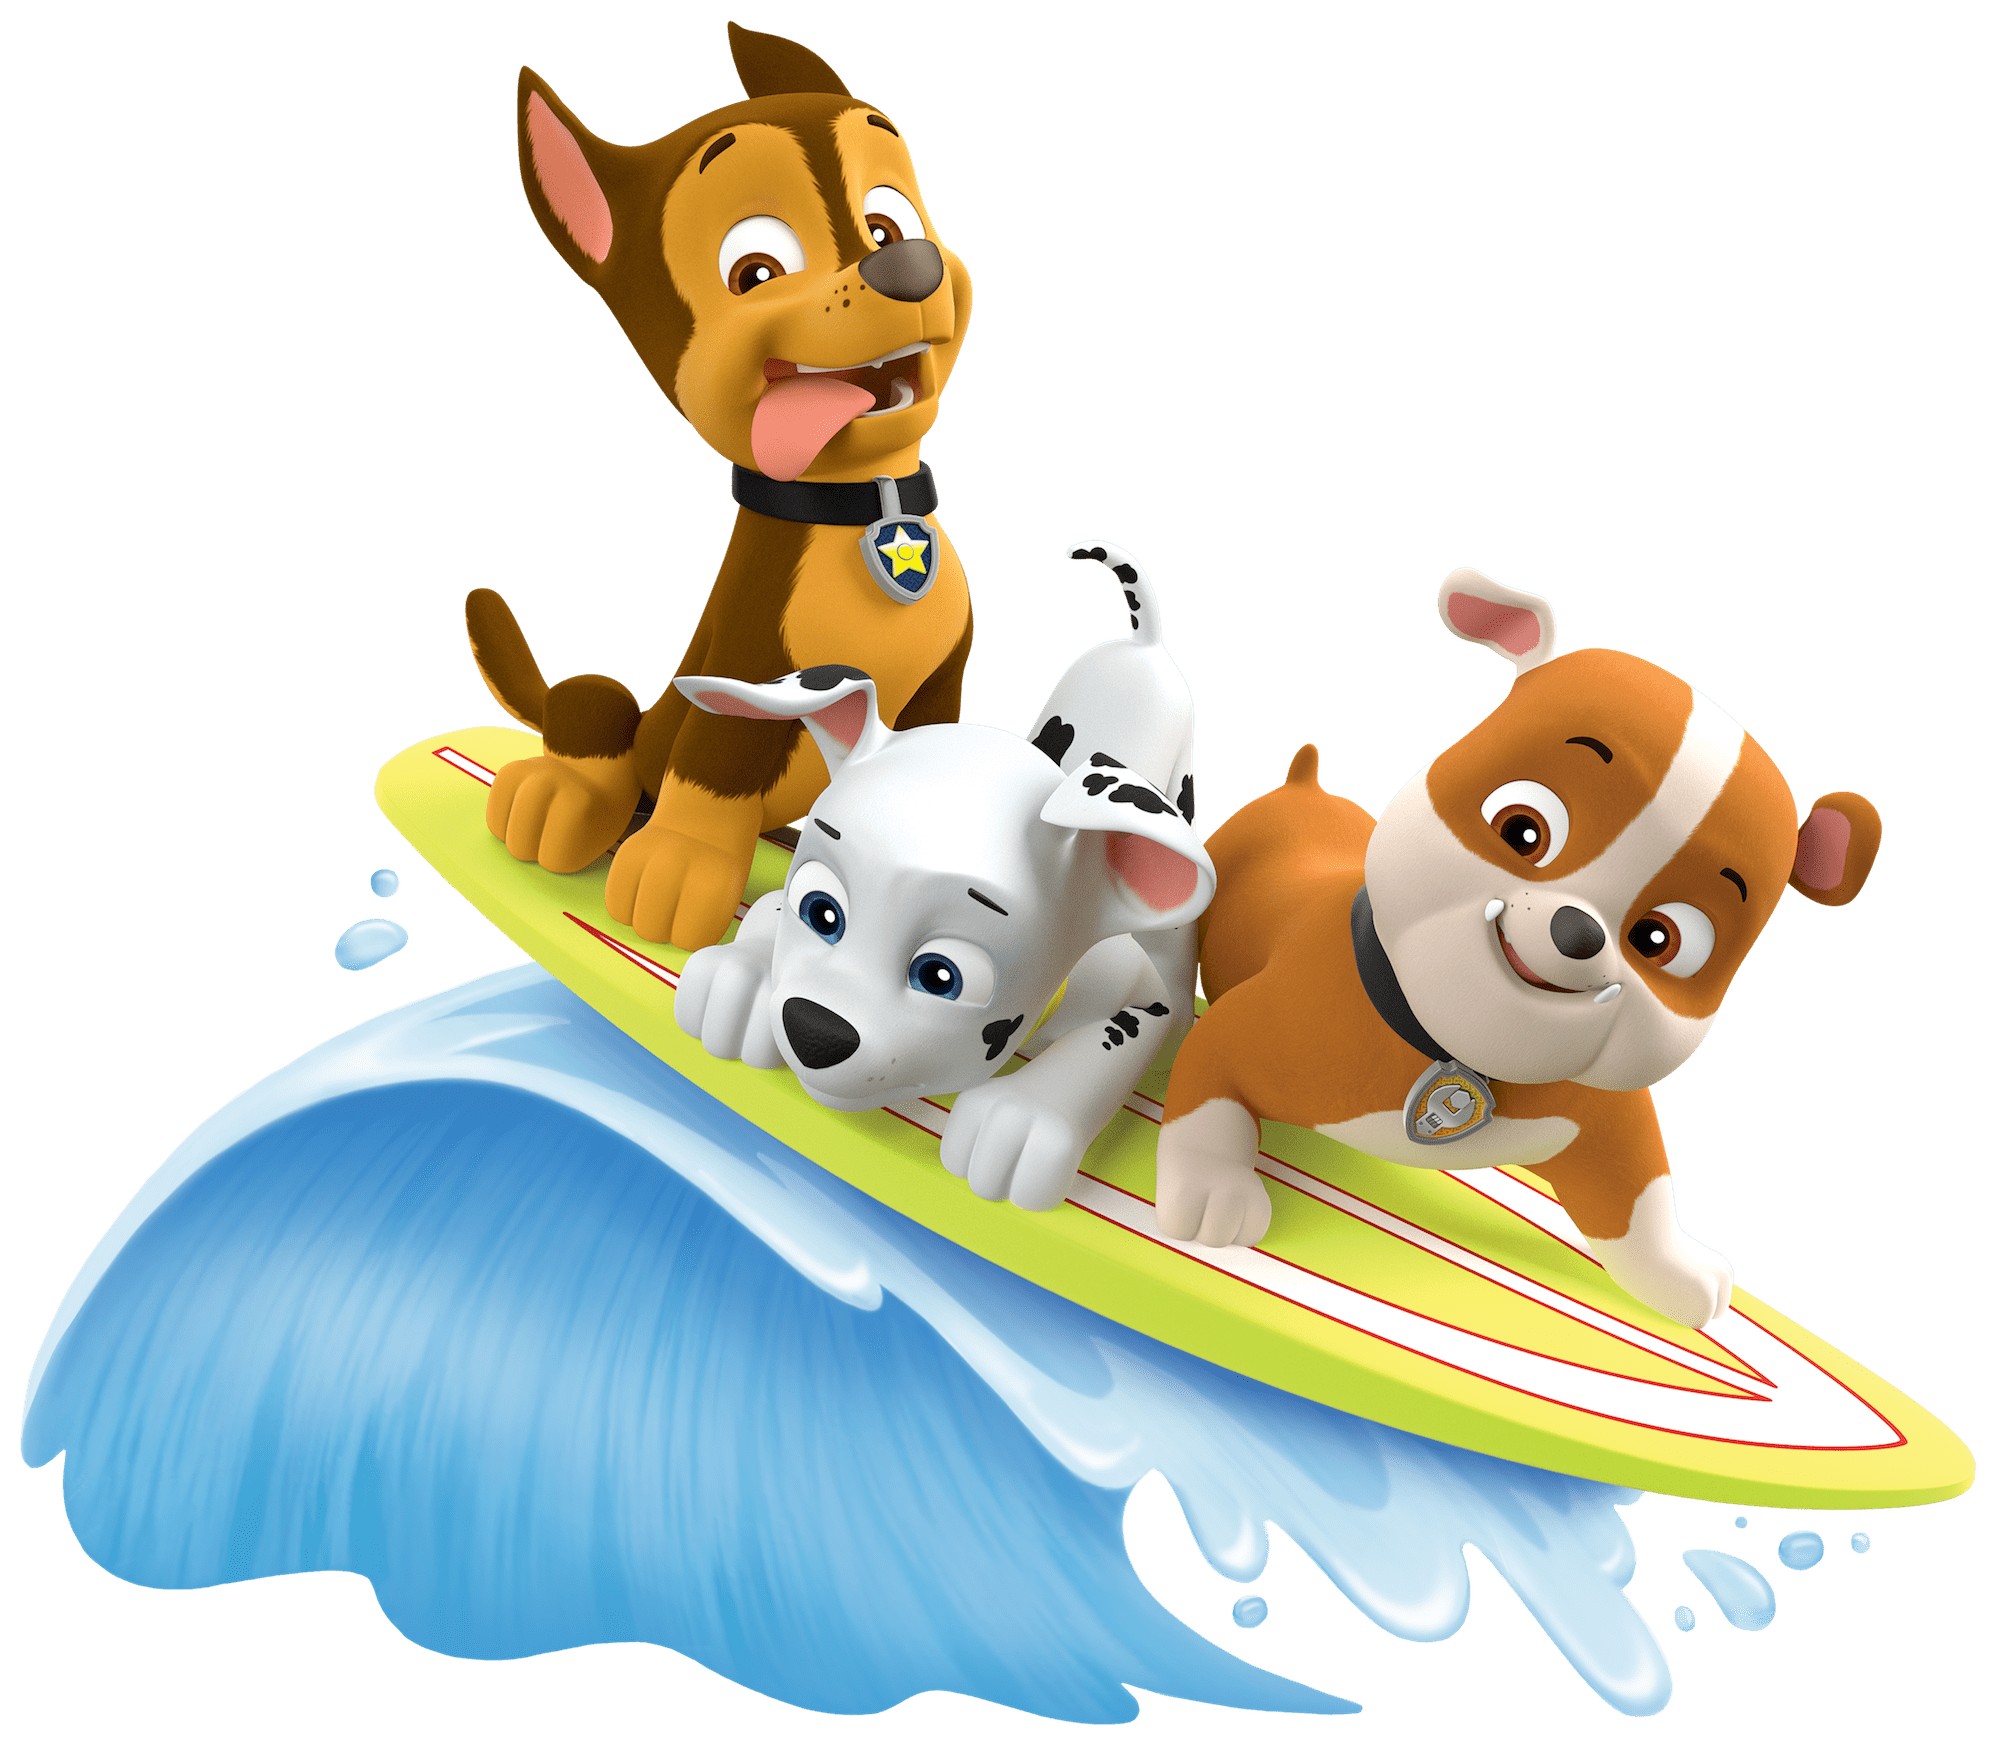 Paw patrol merry christmas clipart image free library Skye Paw Patrol Clipart at GetDrawings.com | Free for personal use ... image free library